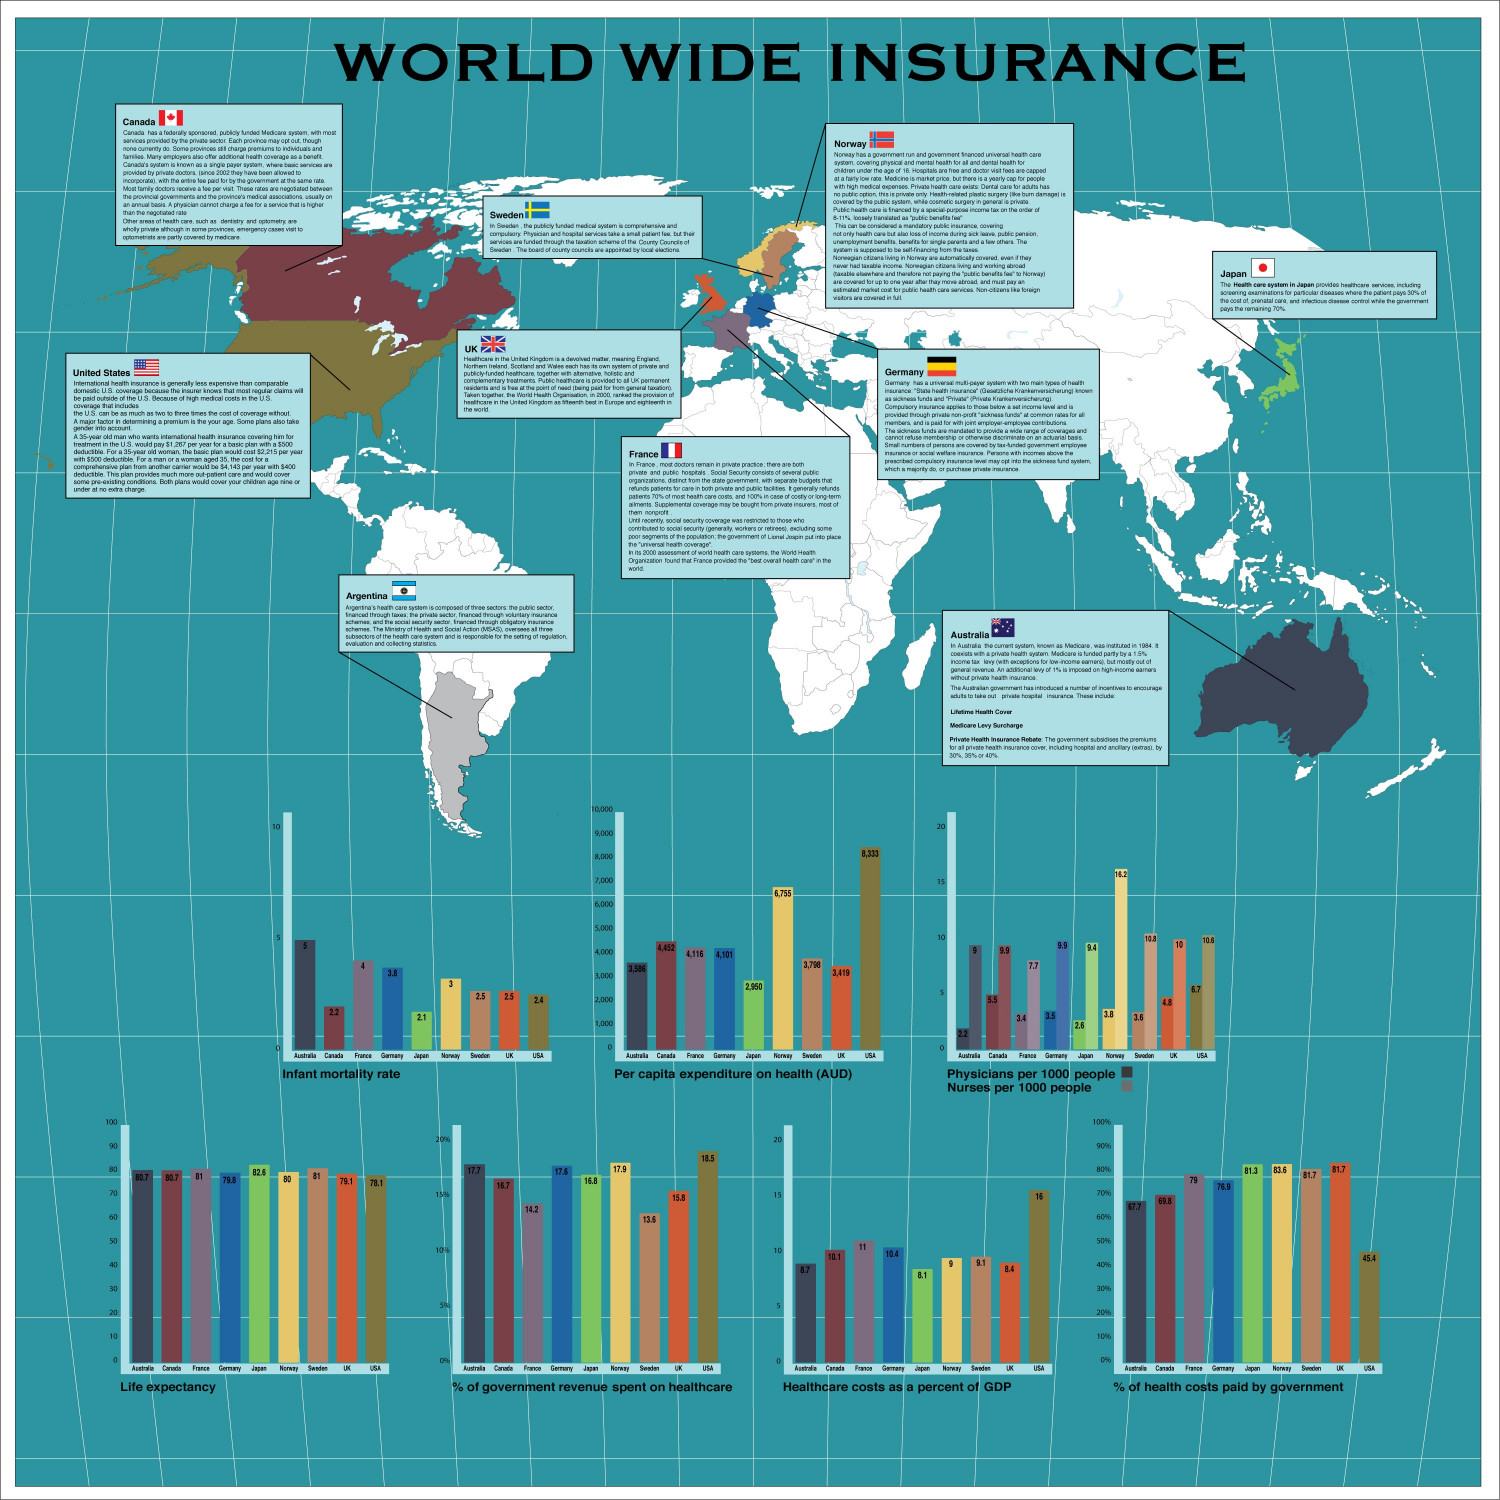 Worldwide Insurance Statistics Infographic